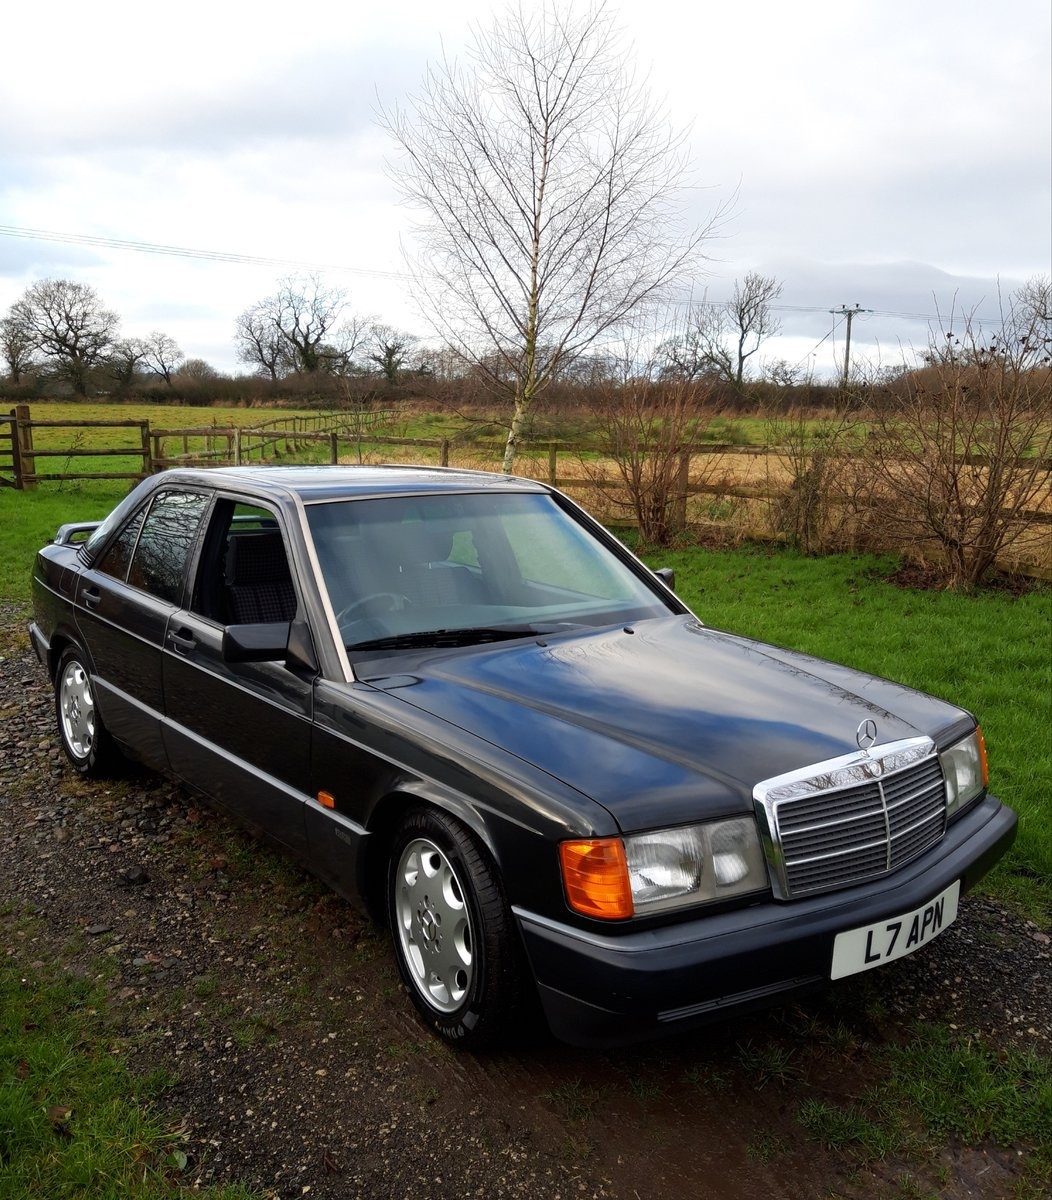 Immaculate Mercedes 190E 1993 2.0 auto For Sale (picture 2 of 6)